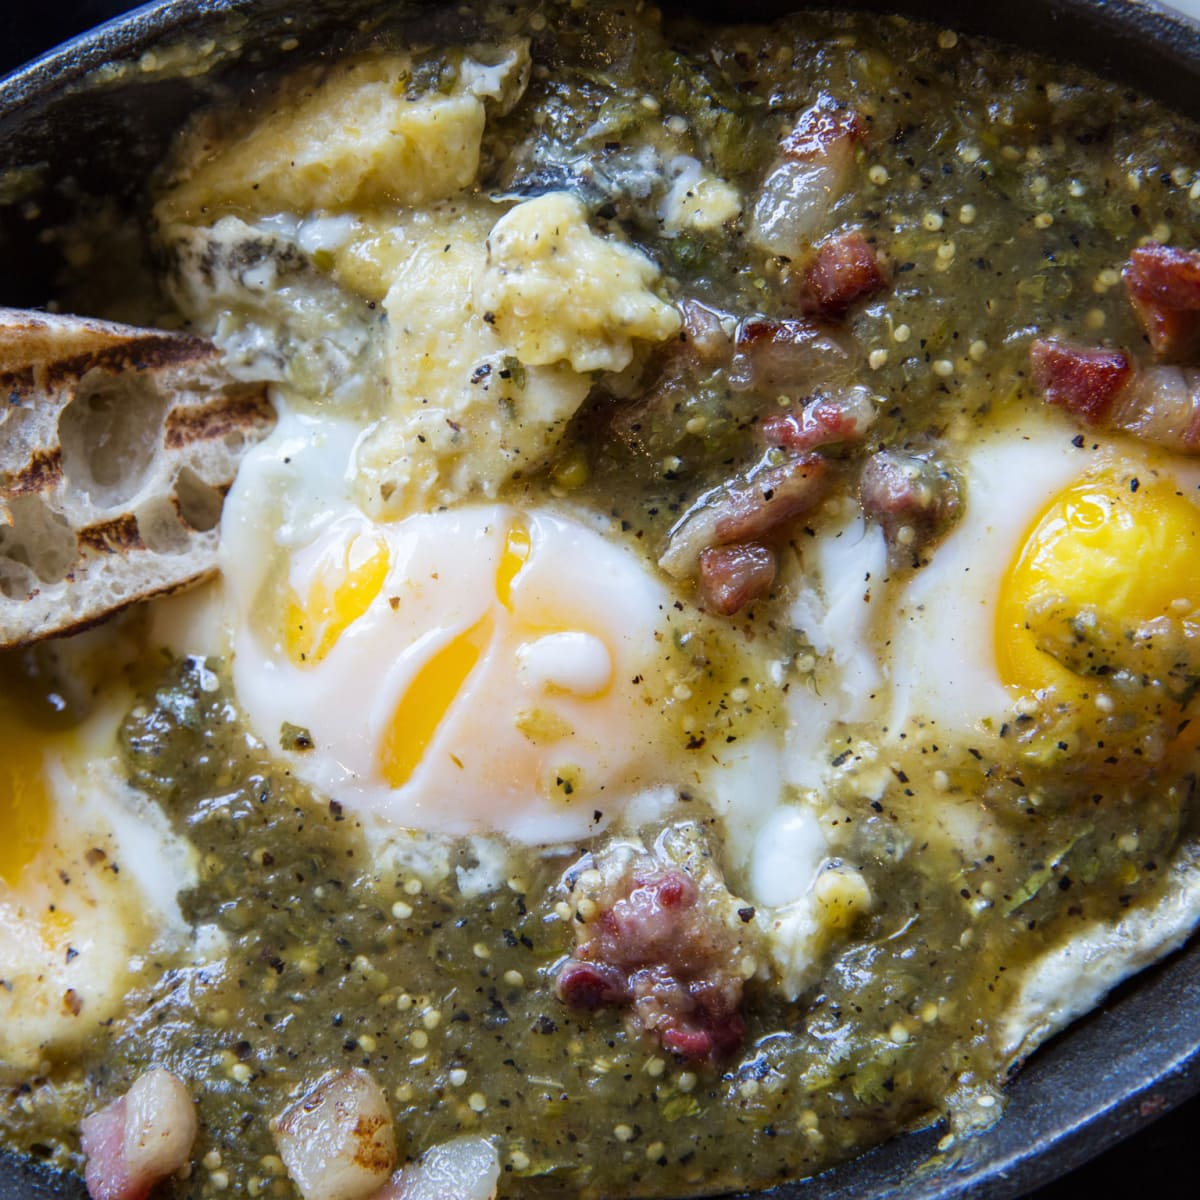 Cane Rosso brunch eggs in anguish